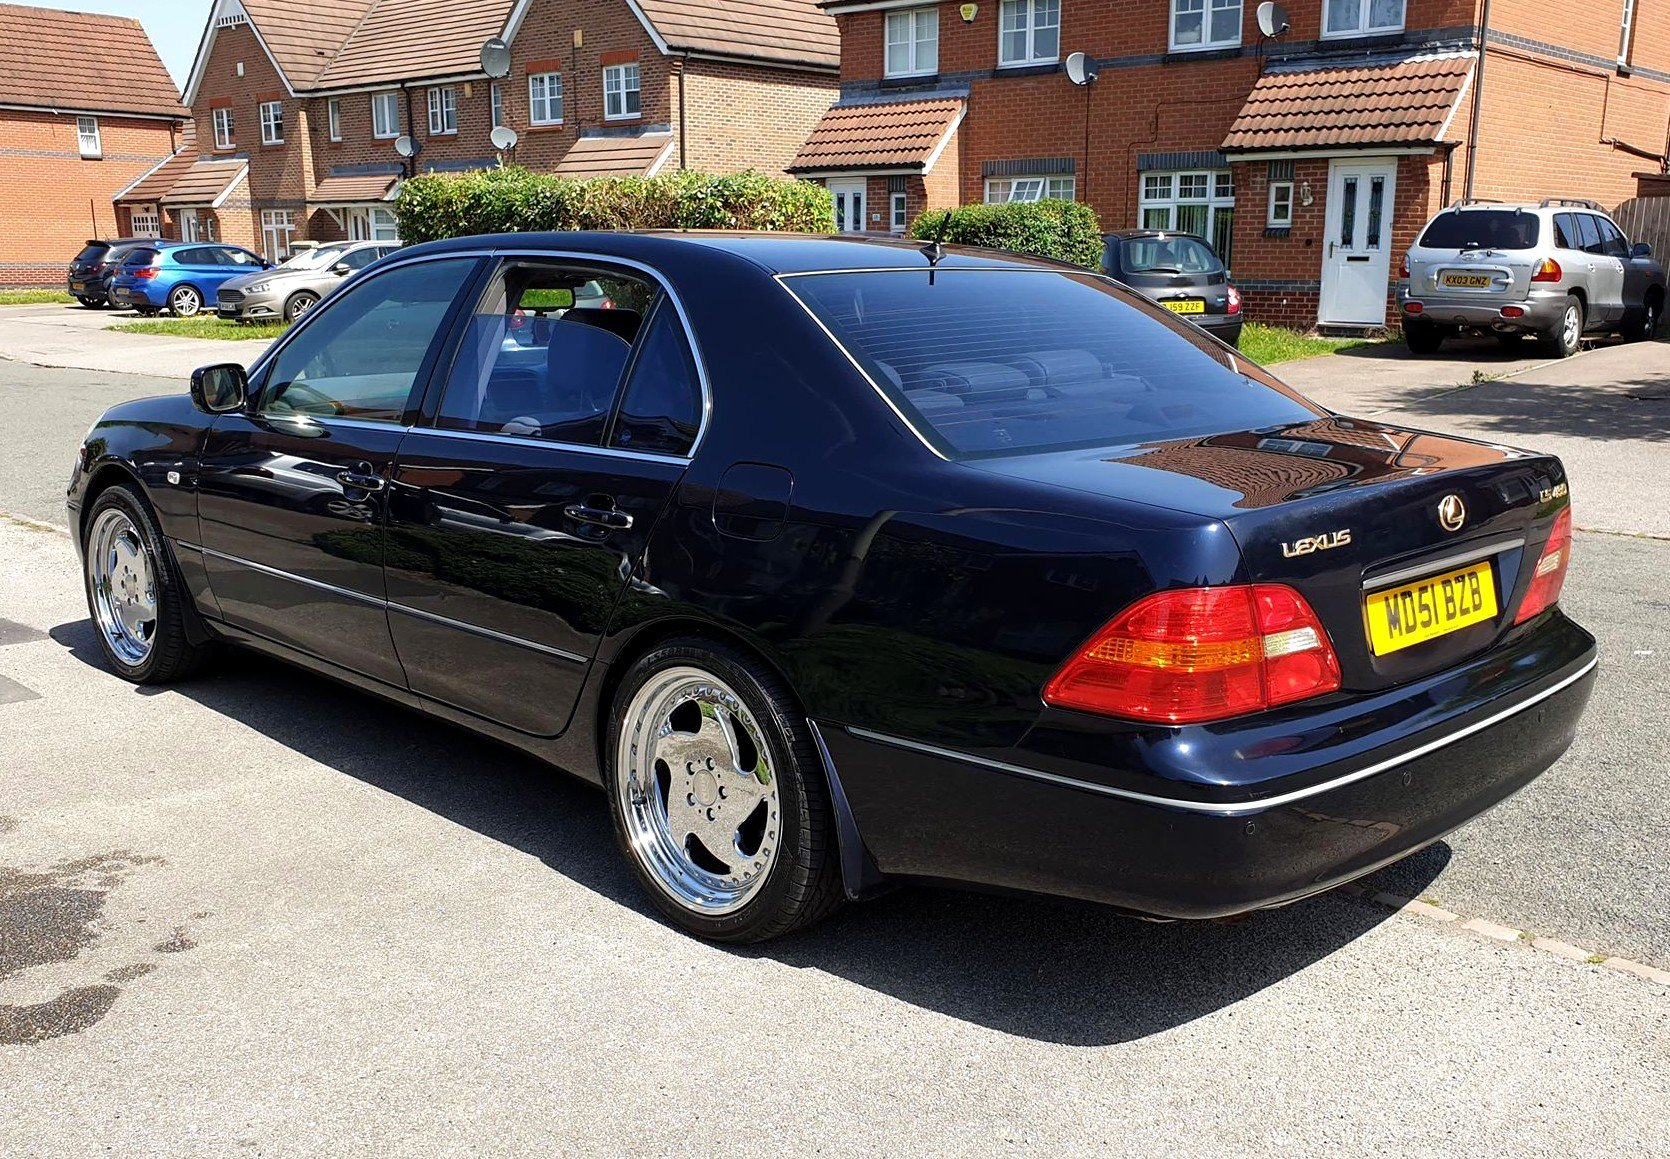 2002 Lexus Ls 430 president top spec For Sale (picture 5 of 6)